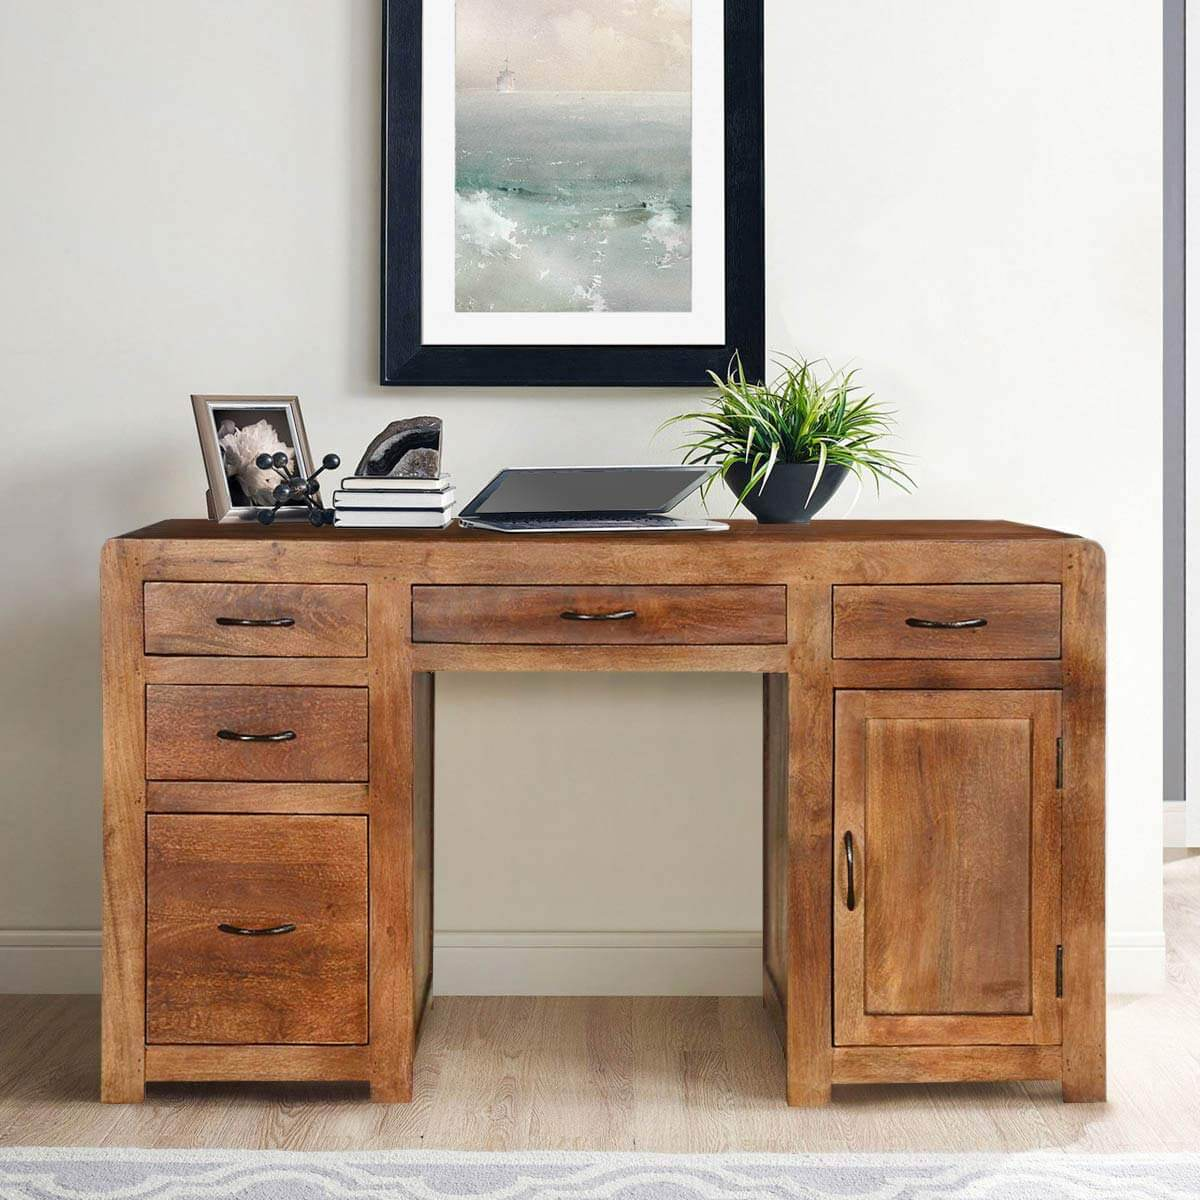 Sedona Solid Mango Wood Home Office Desks With File Cabinets